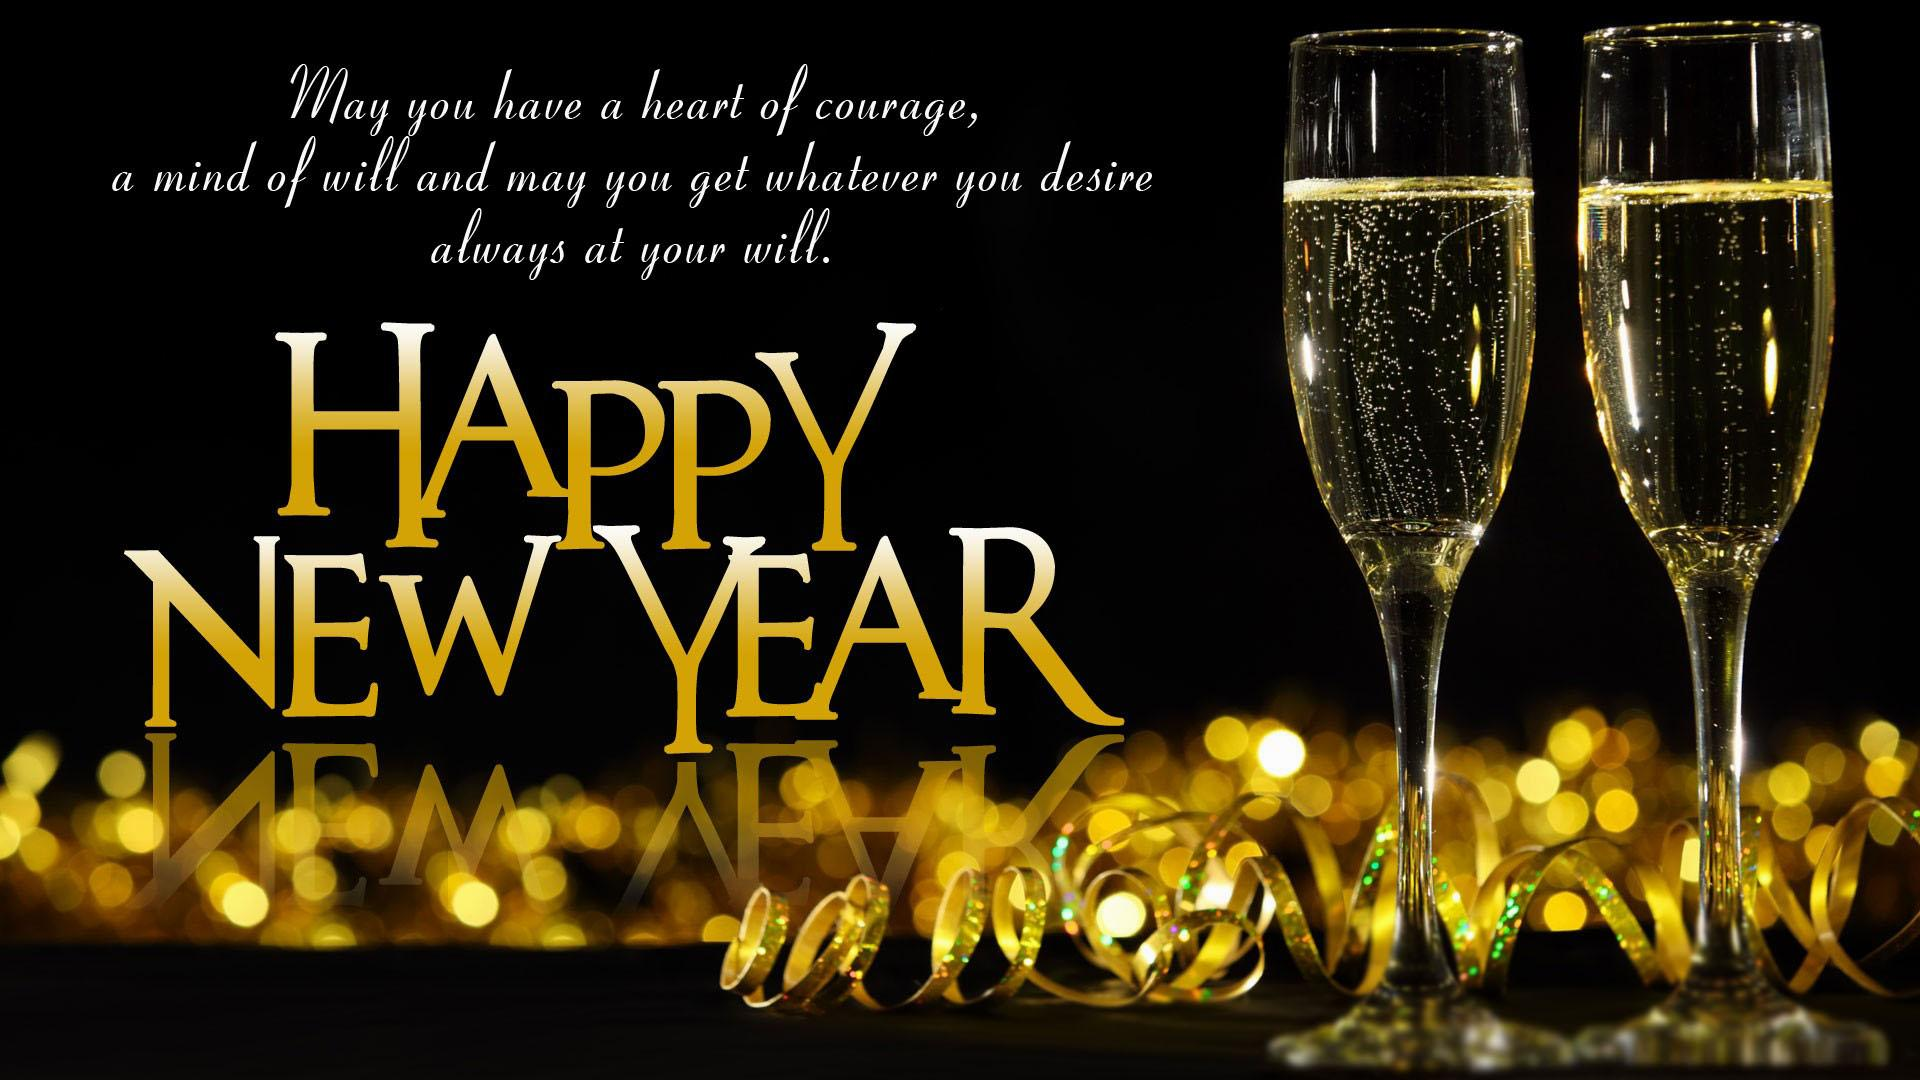 31 Dec 2020 Happy New Year Eve Wishes, SMS Messages Quotes ...